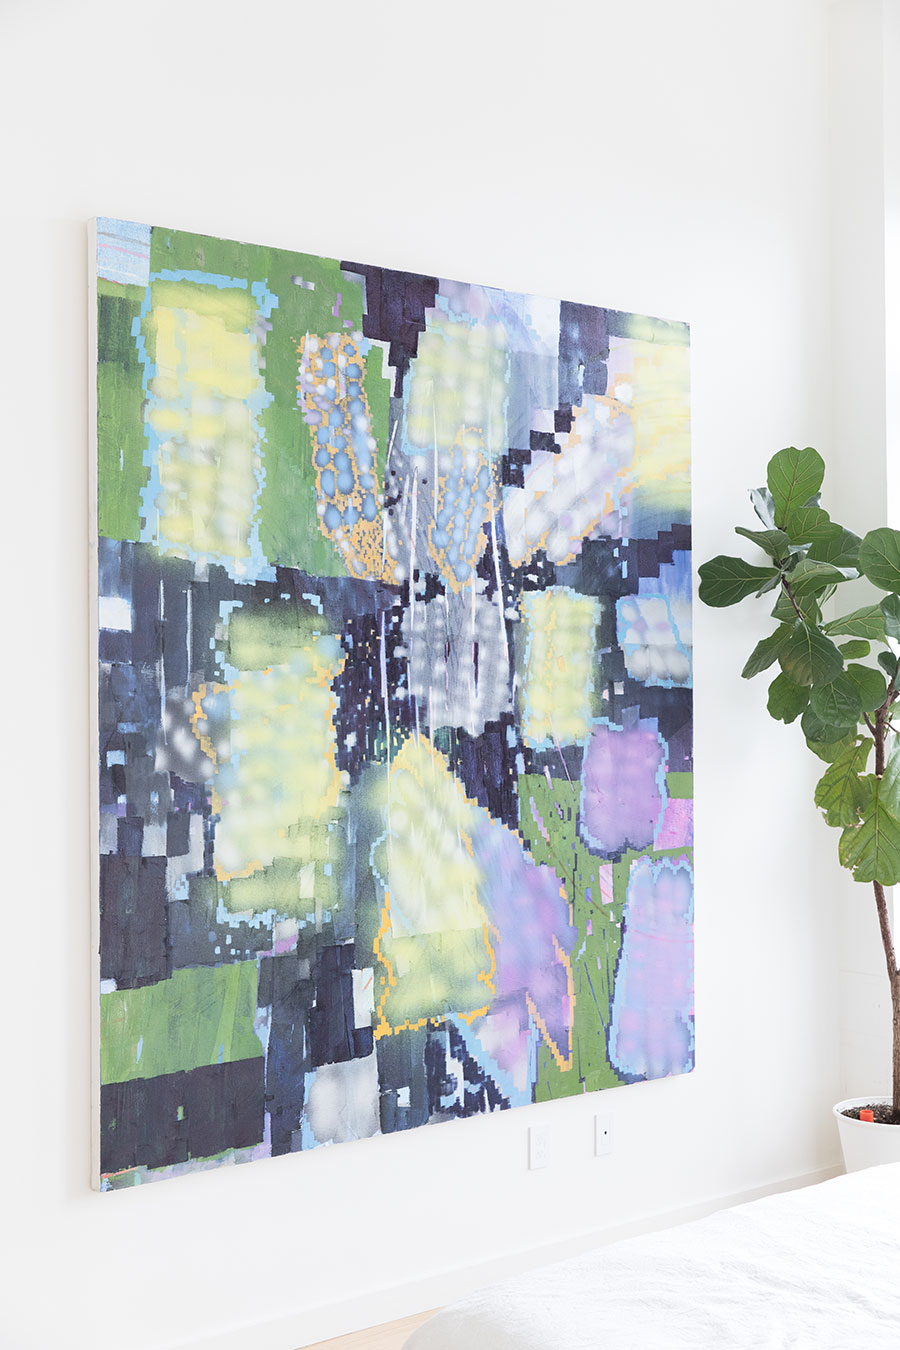 Left: Abstract painting by Keltie Ferris. Right: Painting by David Deutsch